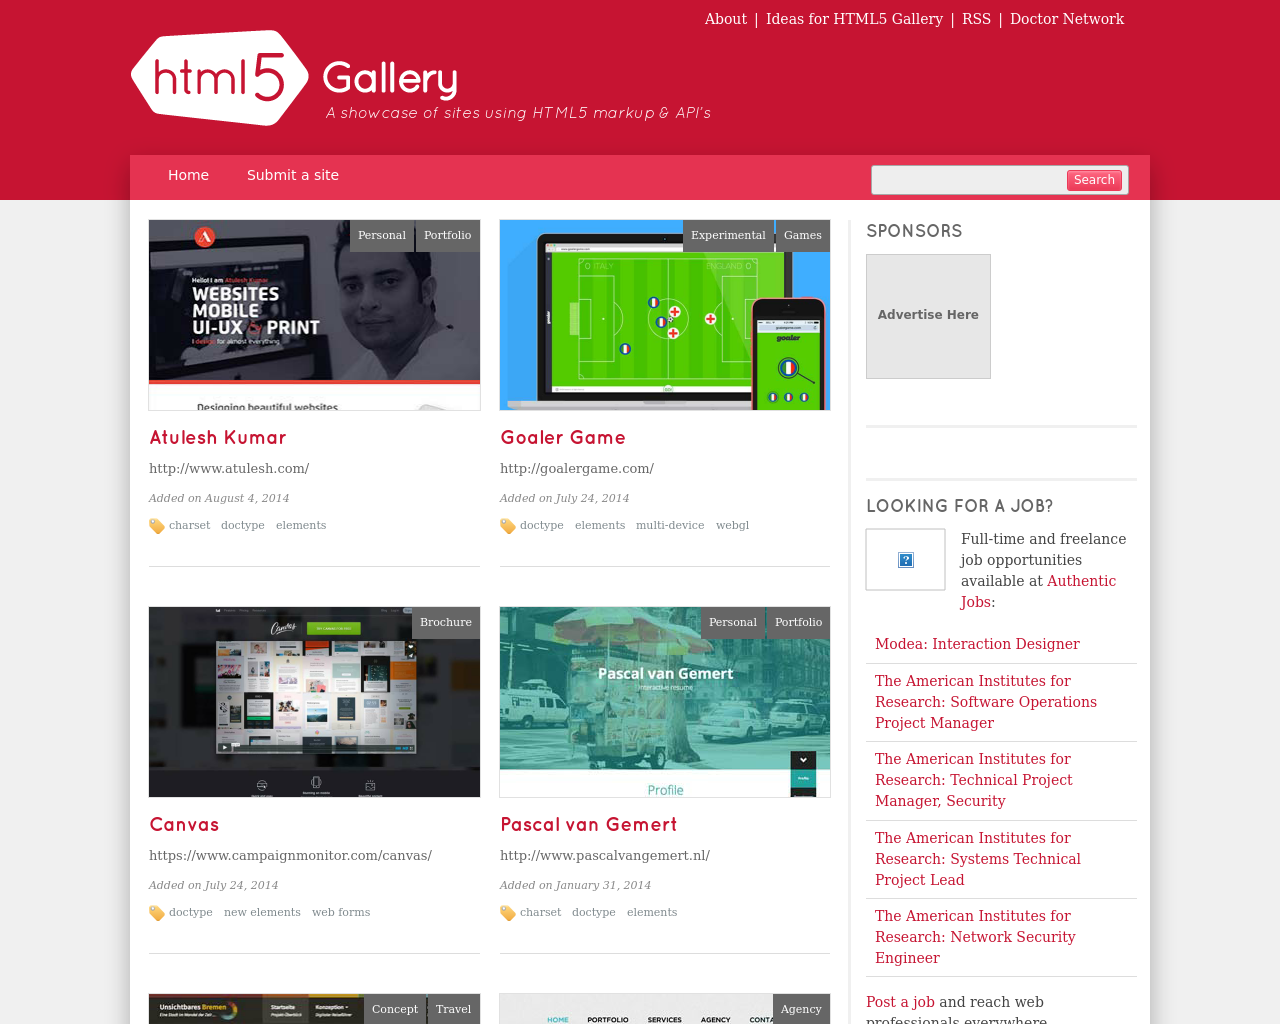 Html5-Gallery-Advertising-Reviews-Pricing